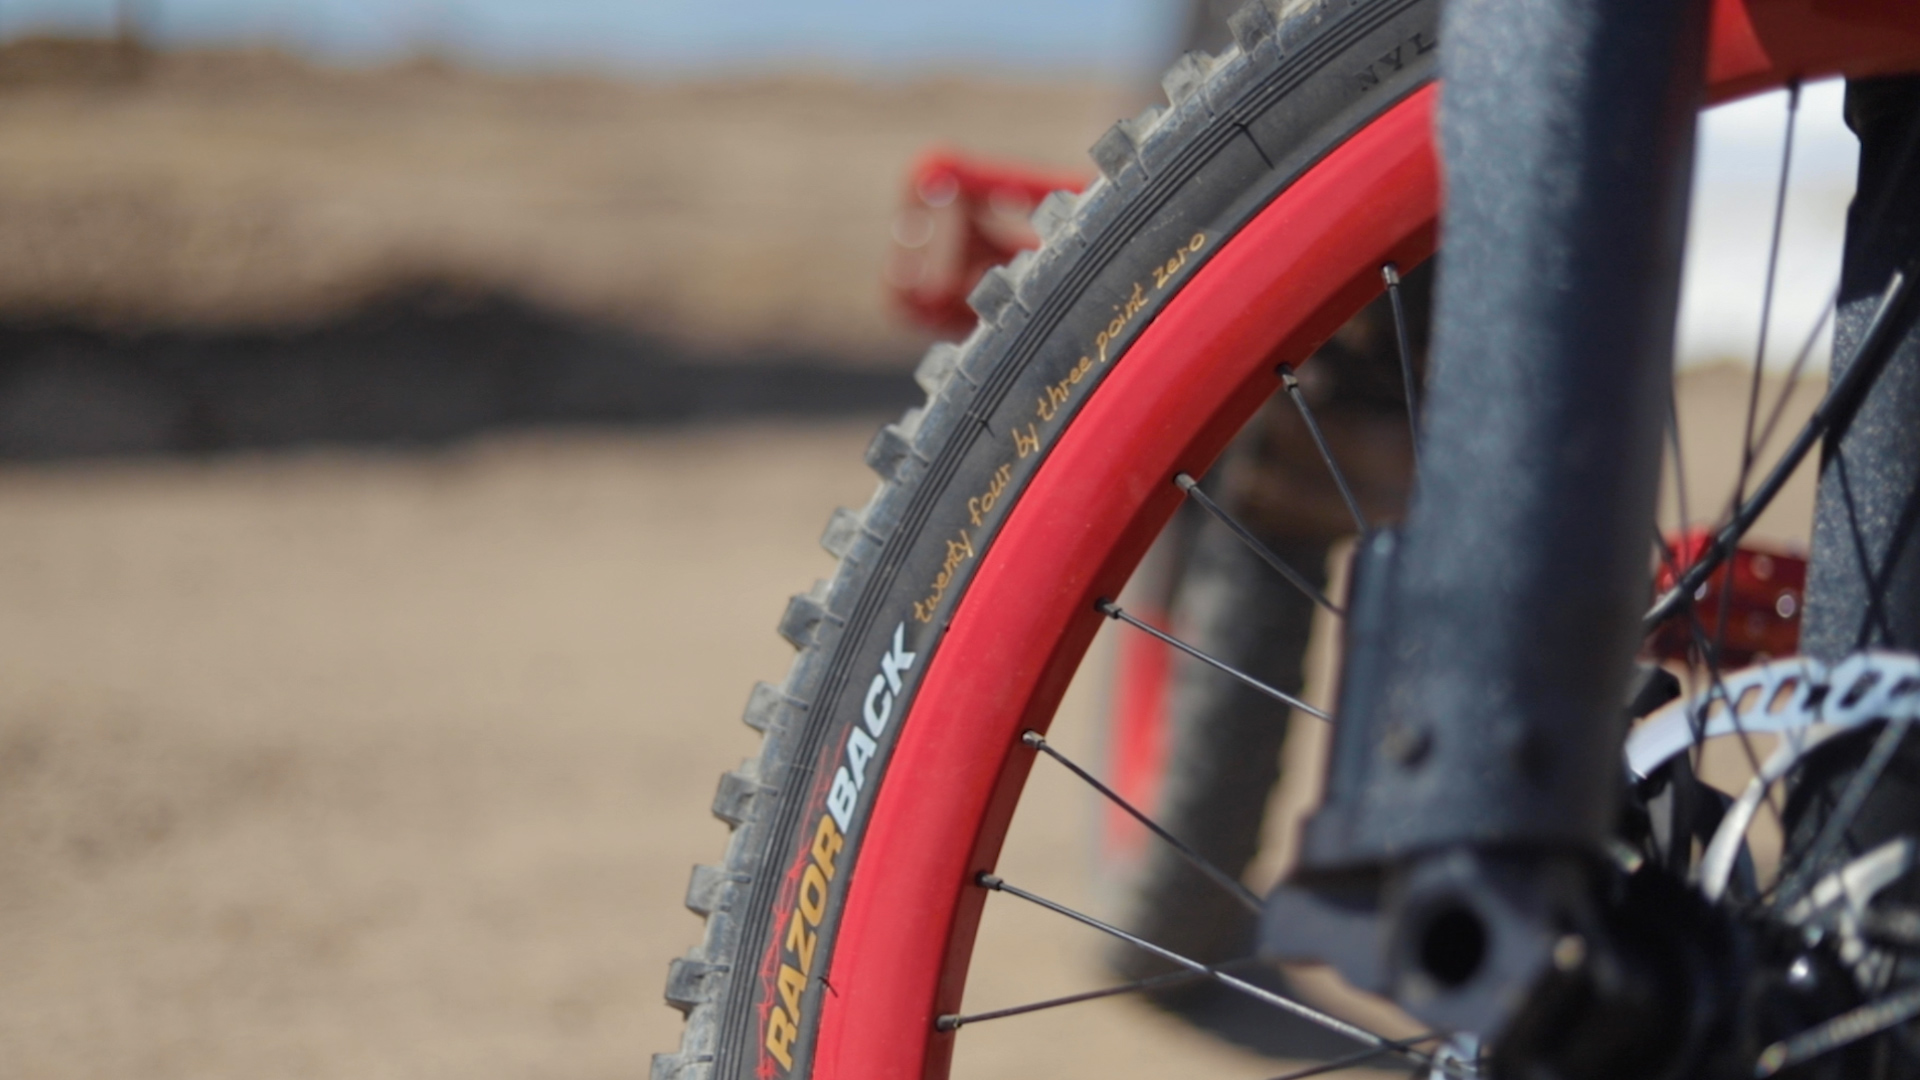 electrified-reviews-stealth-b52-bomber-electric-bike-review-tires.jpg